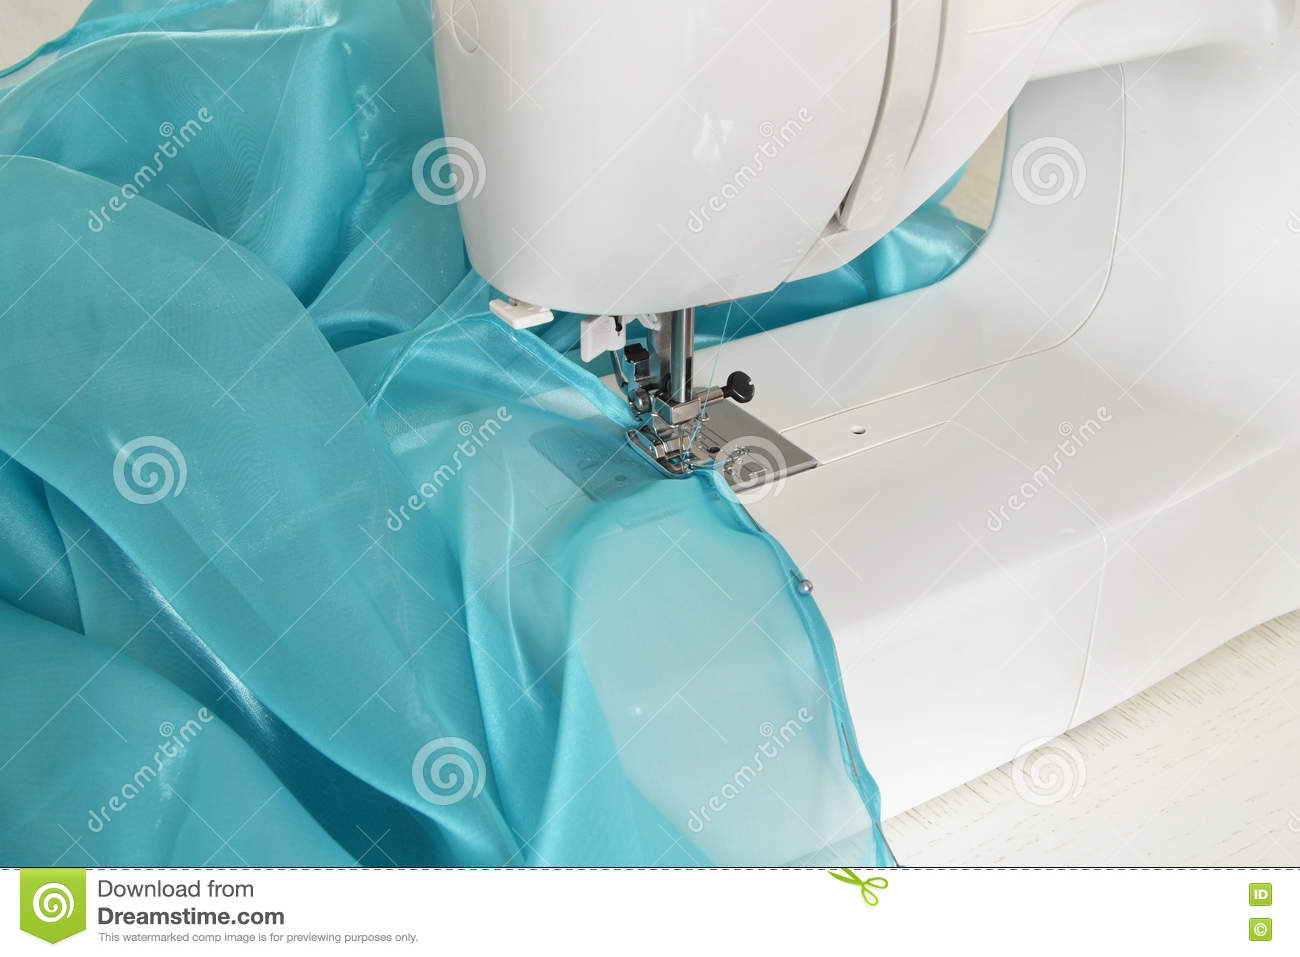 Machine a coudre tulle